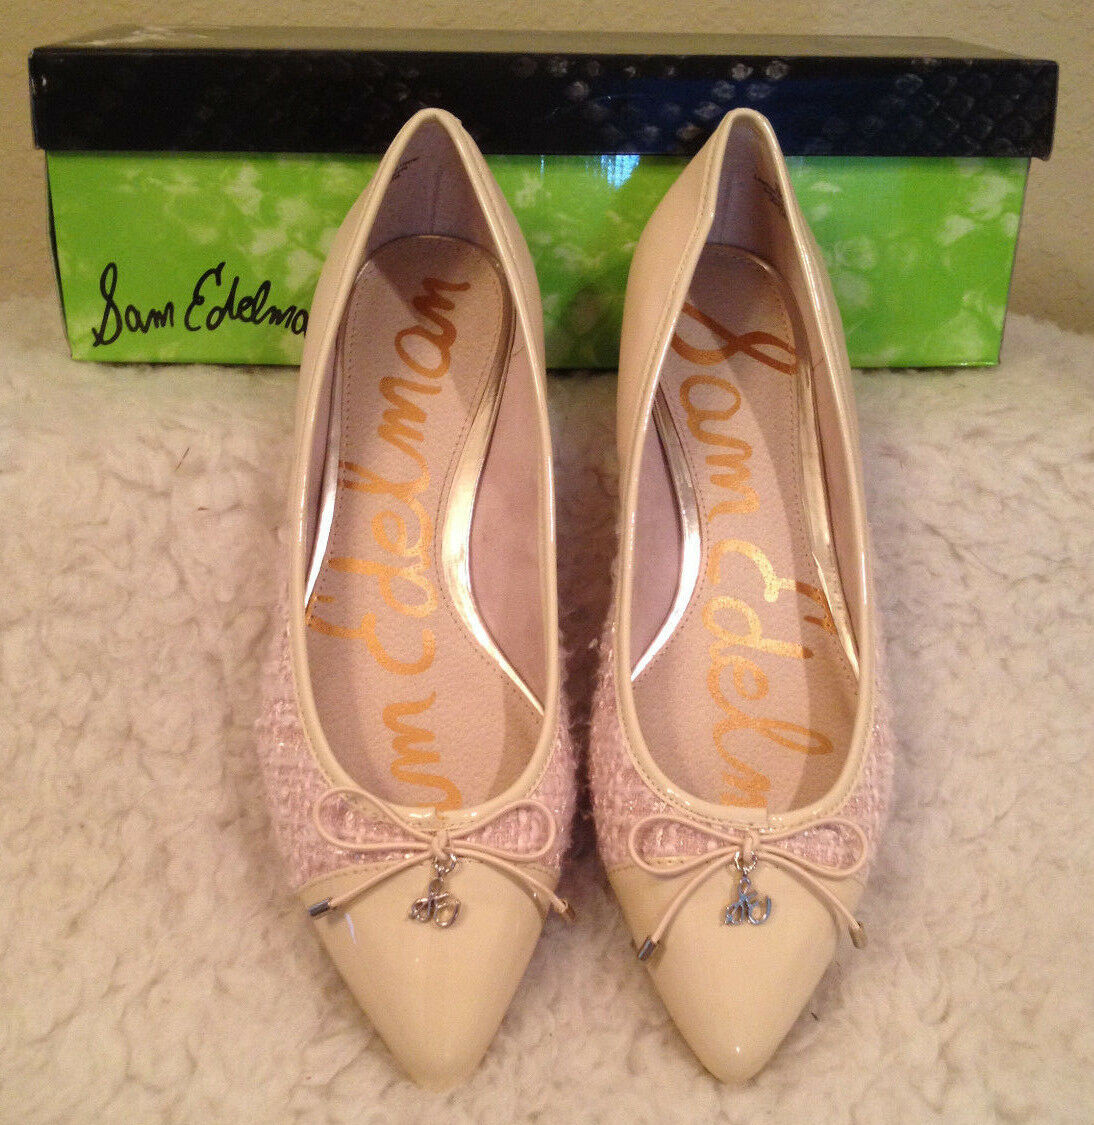 NIB 120 Sam Edelman Lilly Nude LEATHER/TWEED/PATENT Flats Schuhes Damenschuhe 6 M